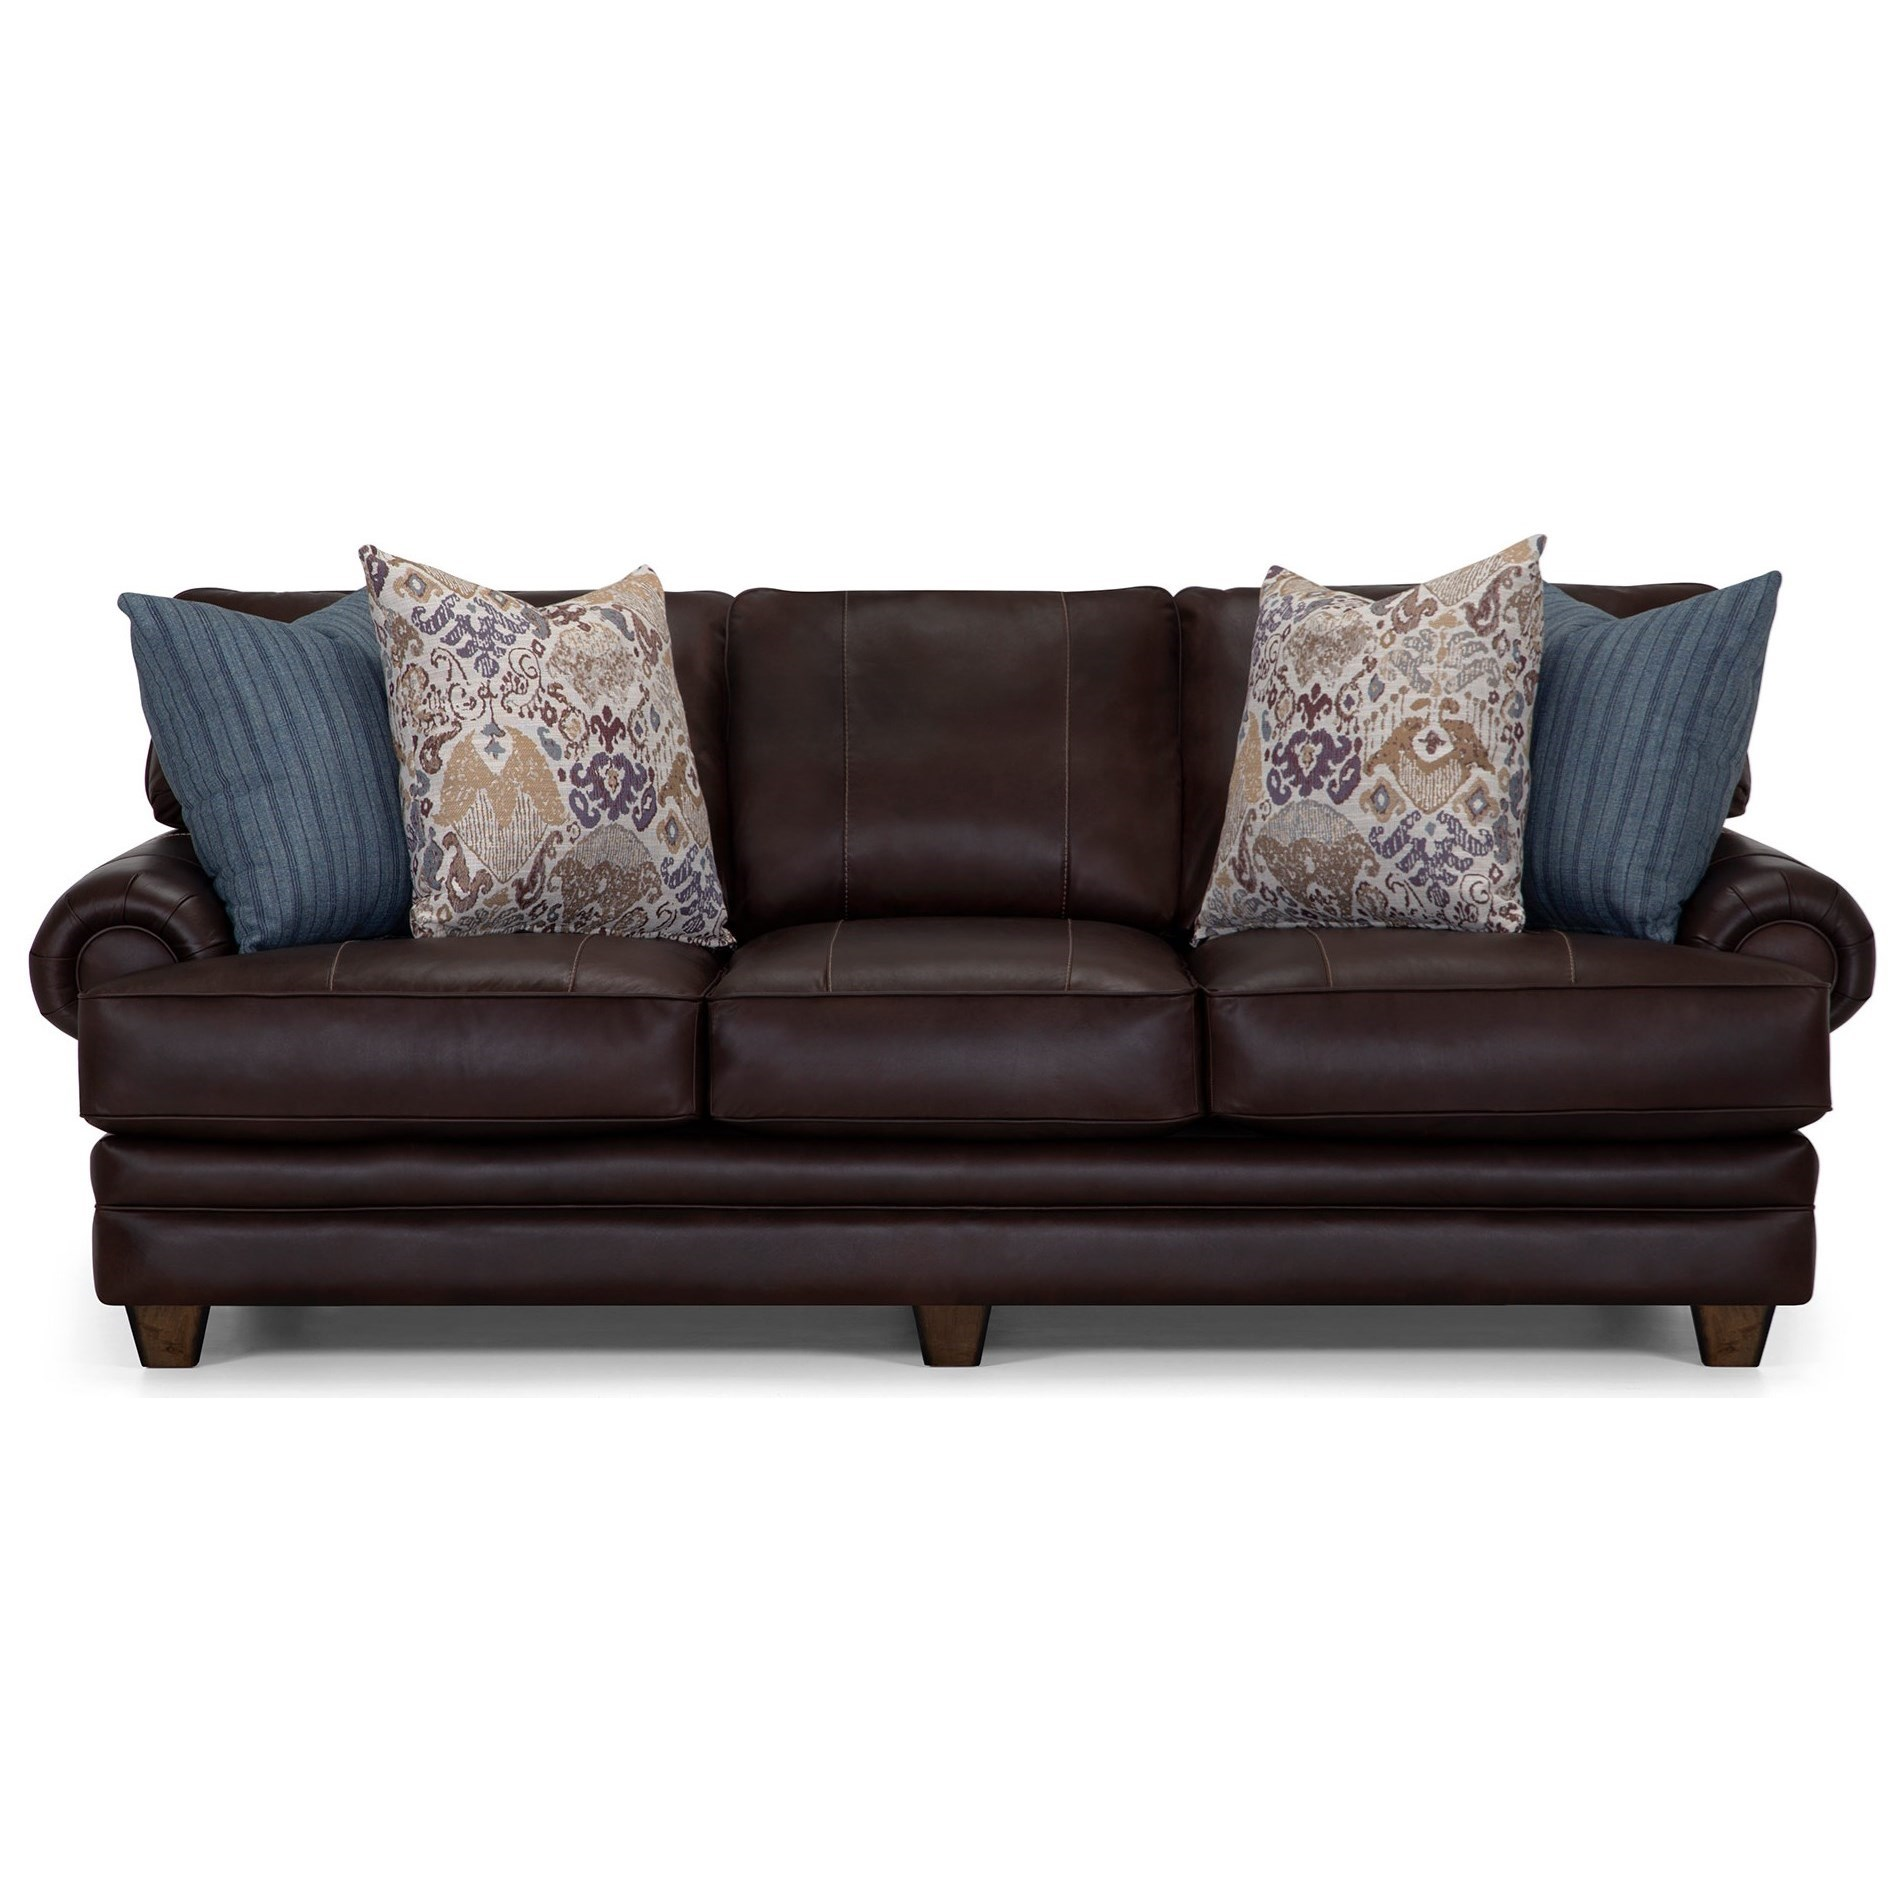 957 Sofa by Franklin at Van Hill Furniture